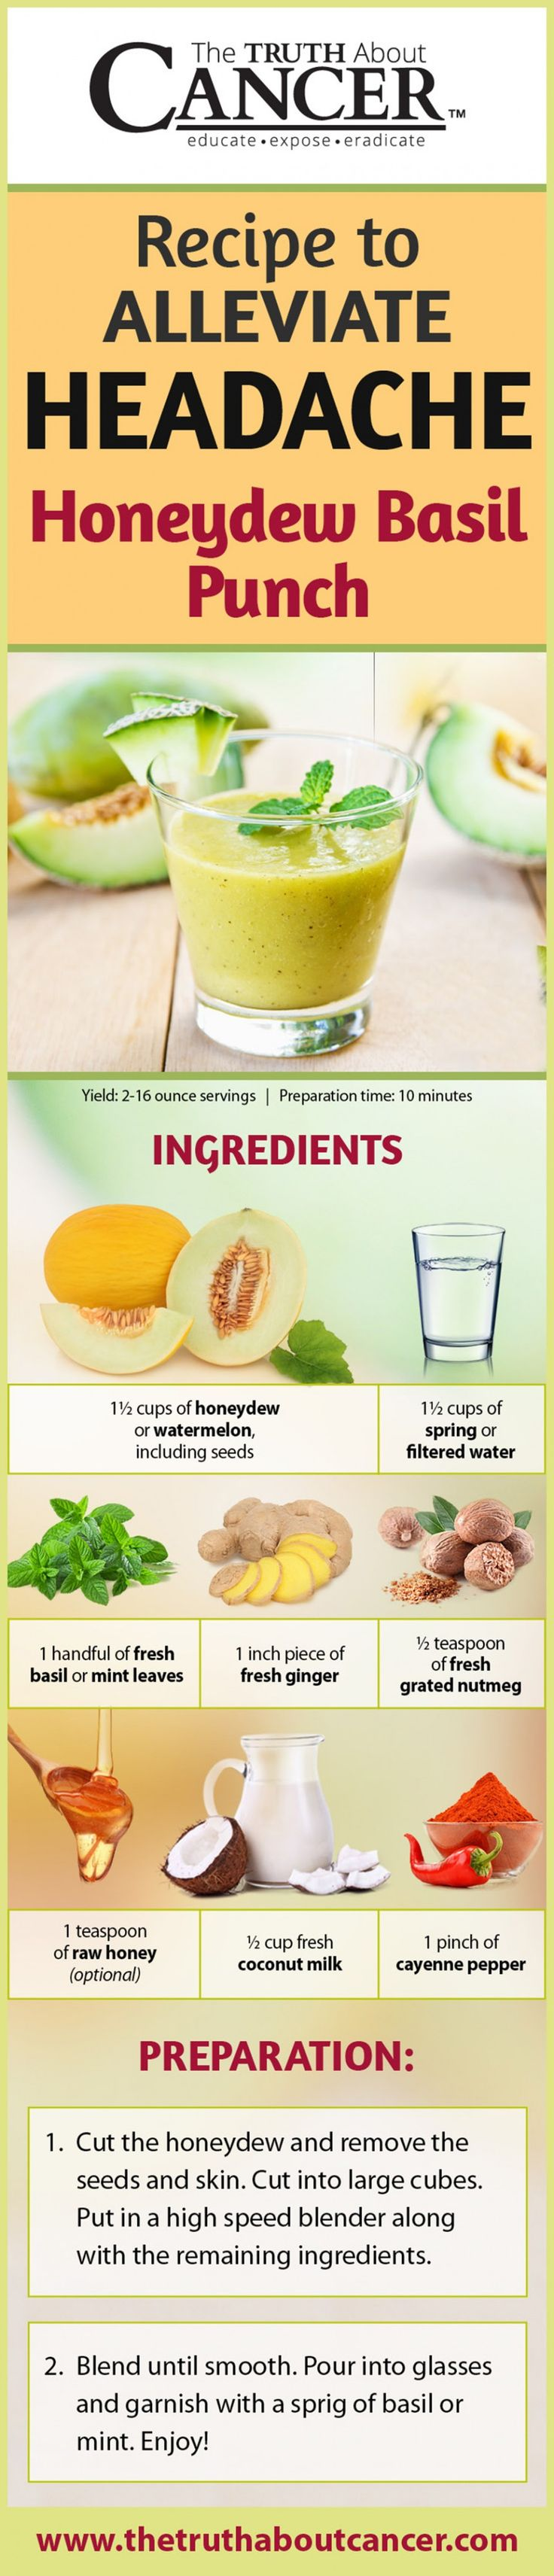 9 Foods That Help Alleviate Headaches From Cancer Treatments (+ Recipe)